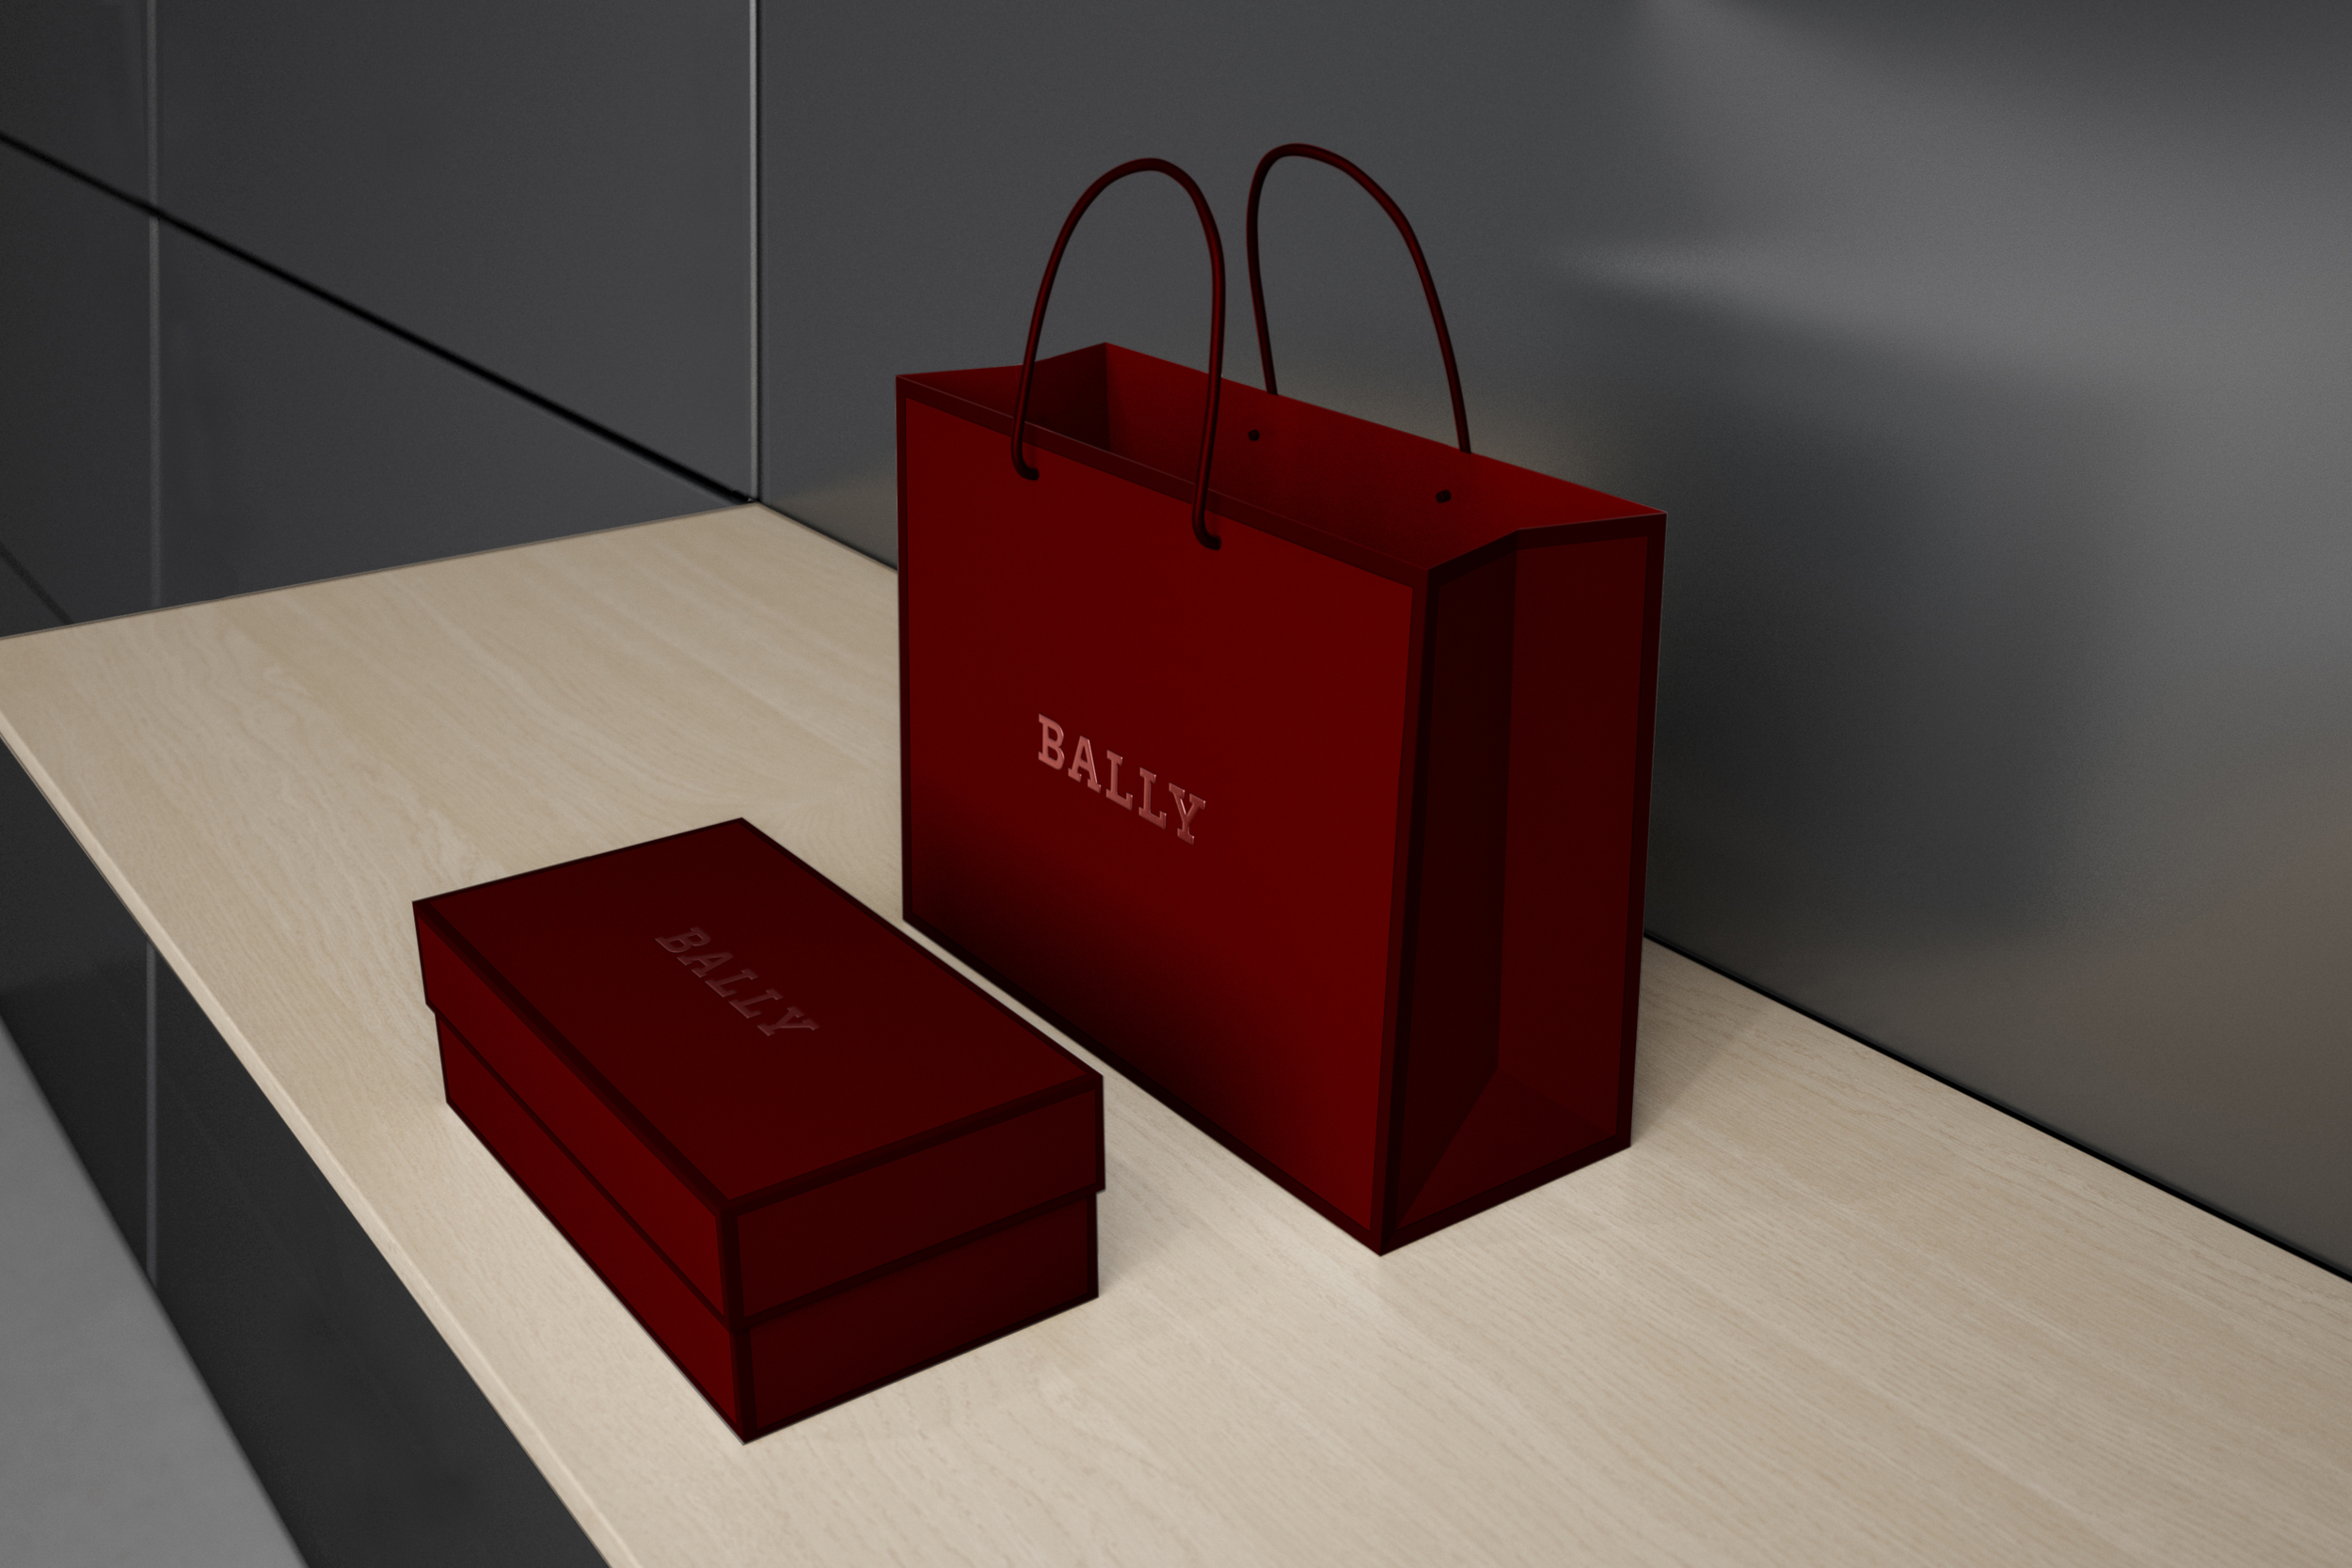 New Bally shopping bag and shoebox